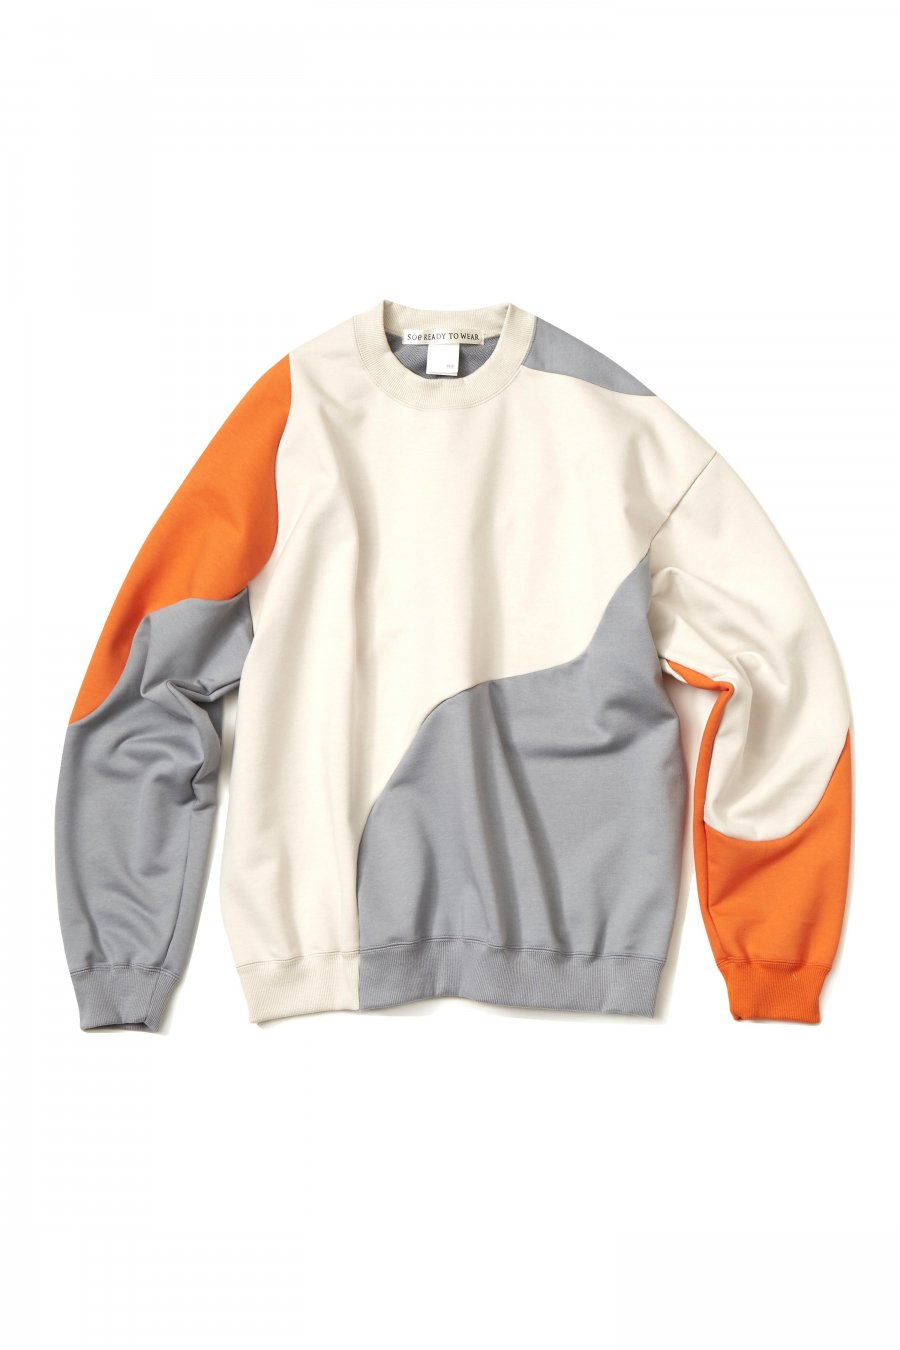 soe  3CC Sweat Shirt Collaborated With Pre_  (WHITE/SAX/ORANGE)<img class='new_mark_img2' src='https://img.shop-pro.jp/img/new/icons15.gif' style='border:none;display:inline;margin:0px;padding:0px;width:auto;' />